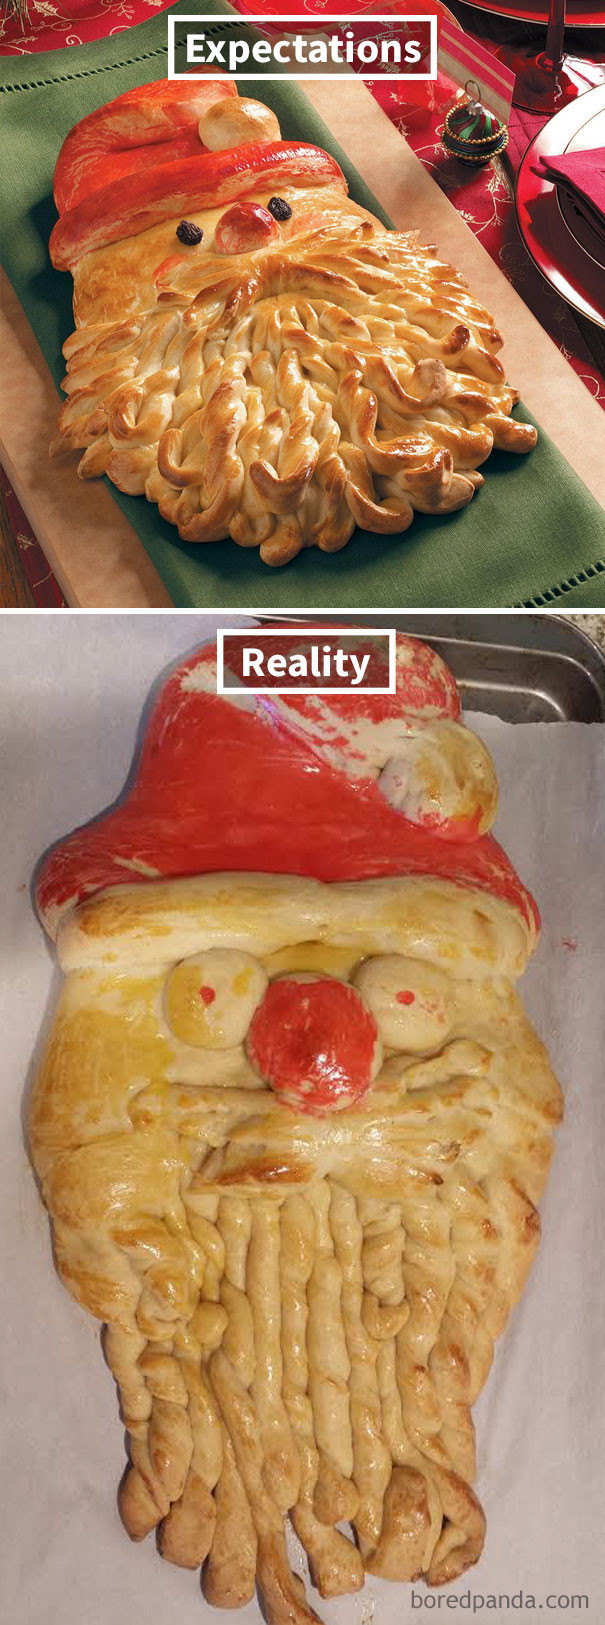 funny-food-fails-expectations-vs-reality-104-5a5320a436393__605